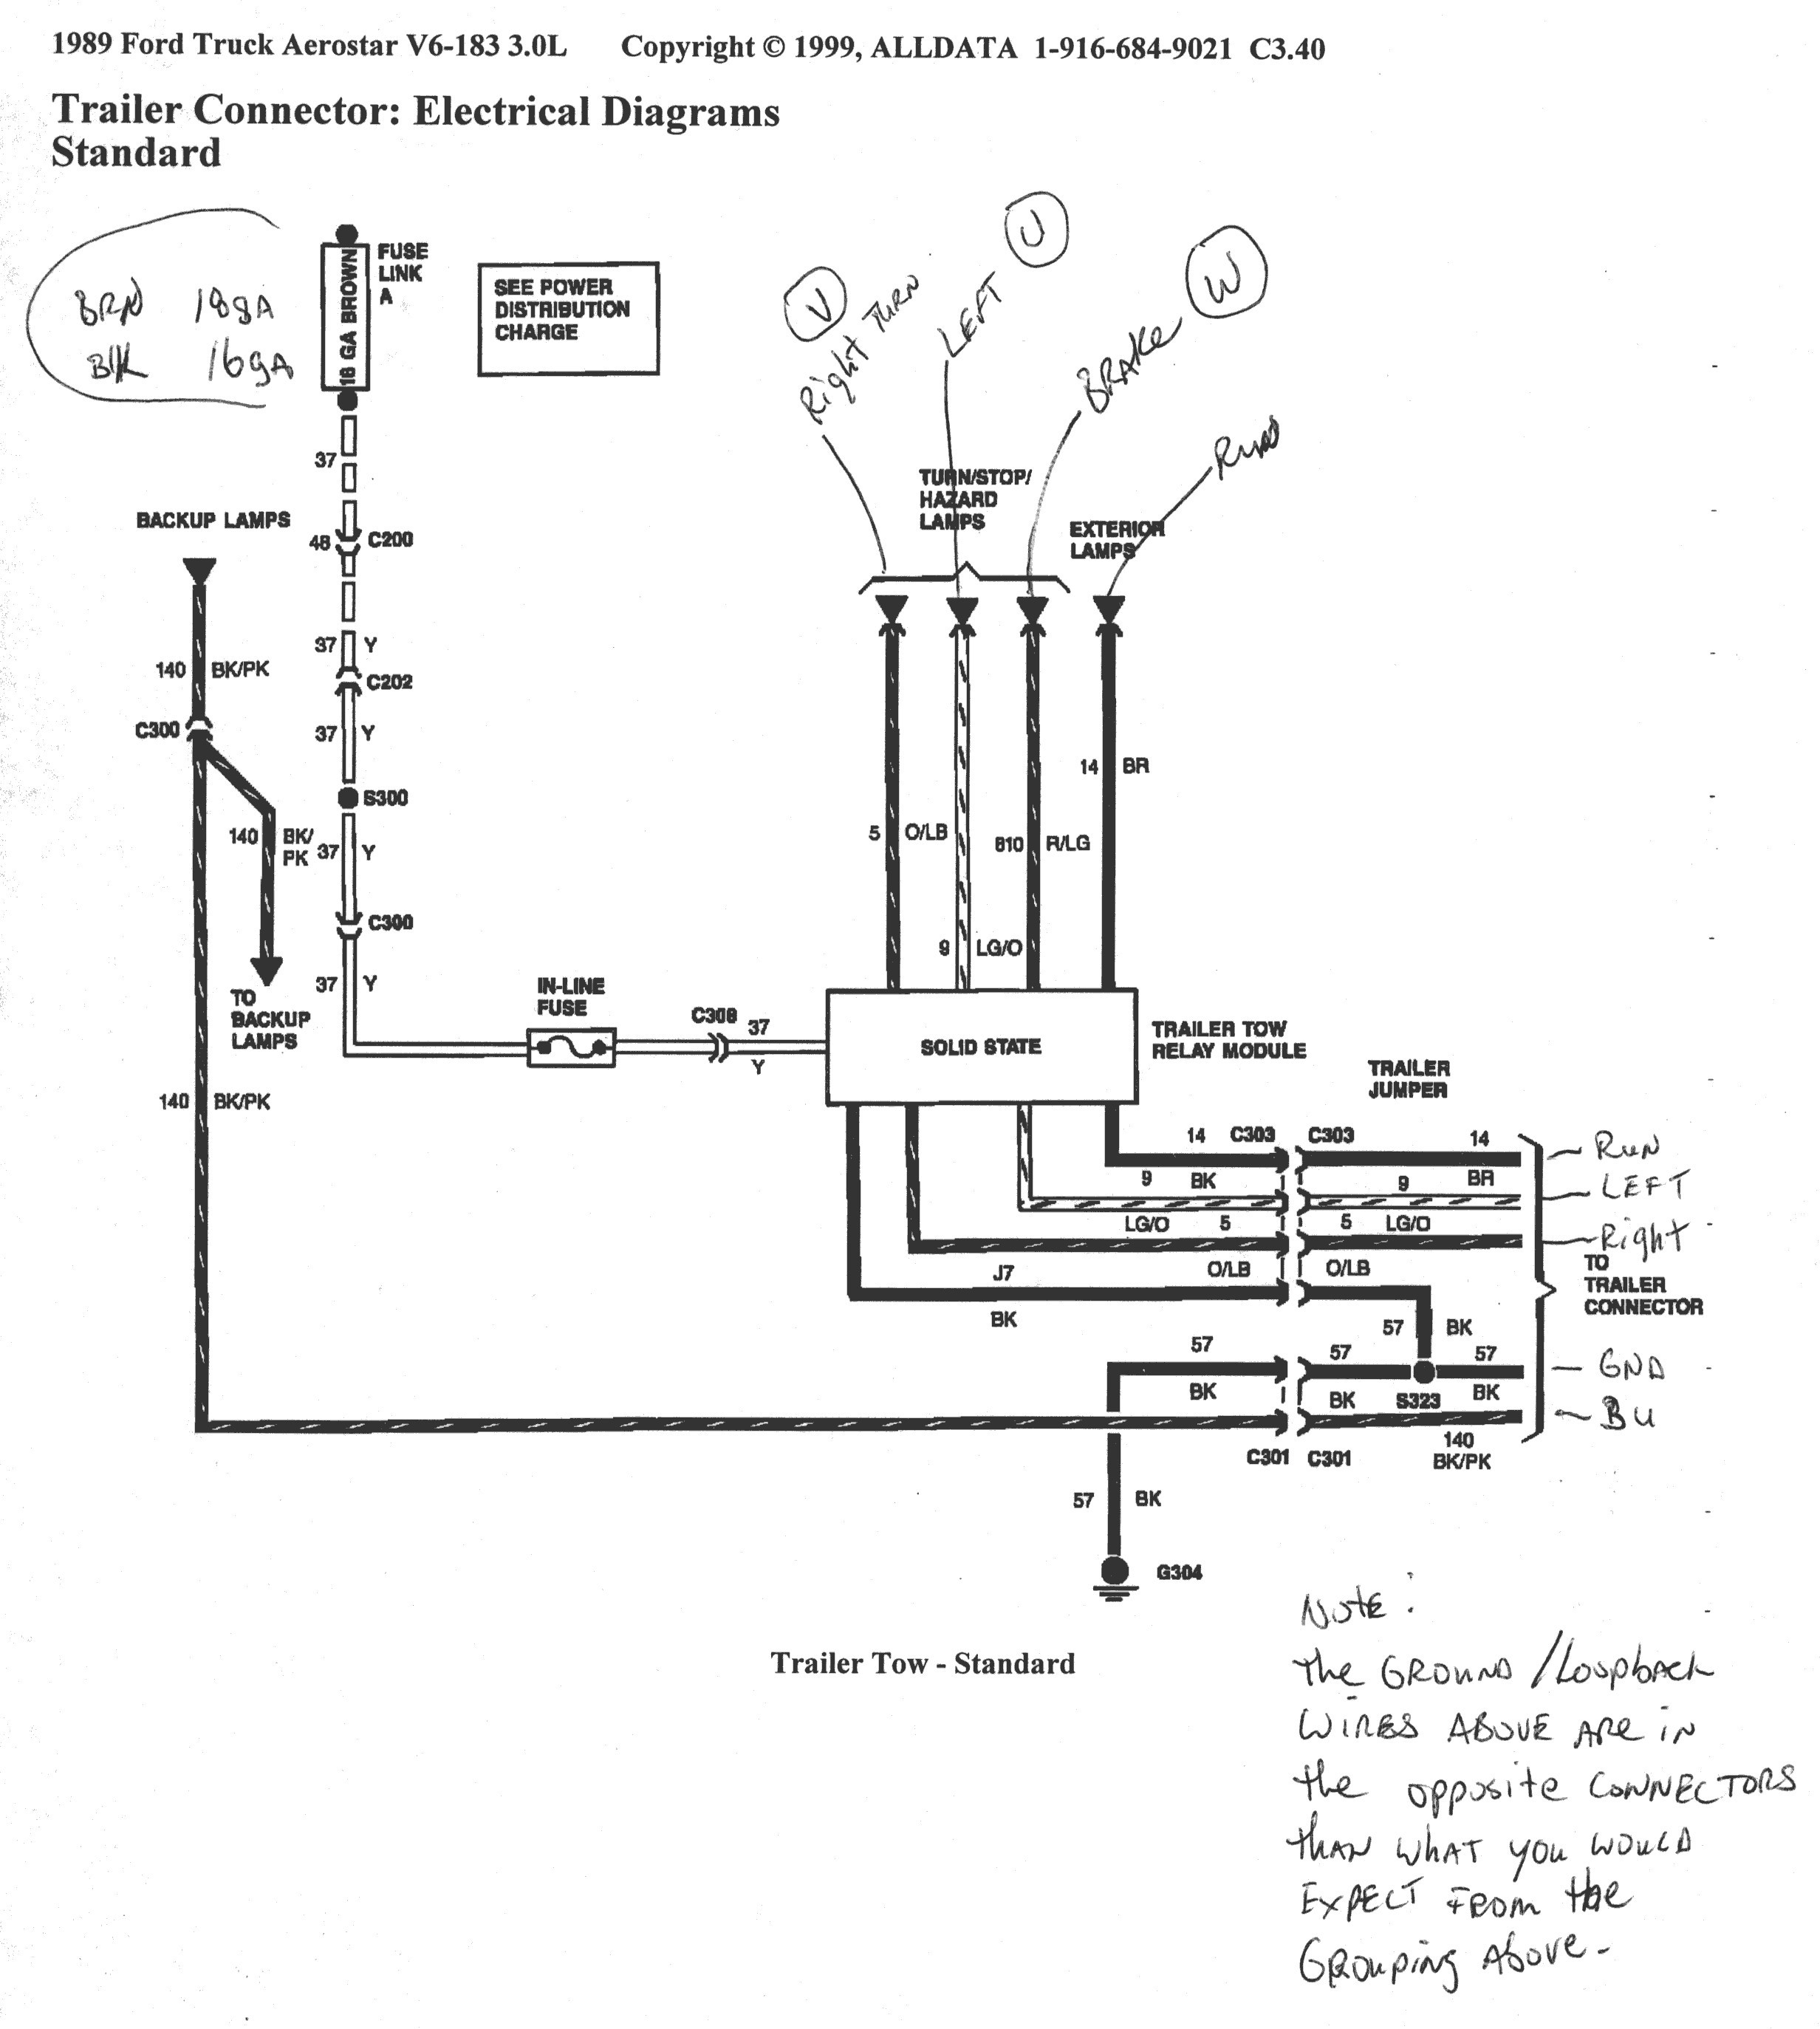 Get 2001 Ford F250 Trailer Wiring Diagram Sample - 2001 Ford F250 Trailer Wiring Diagram